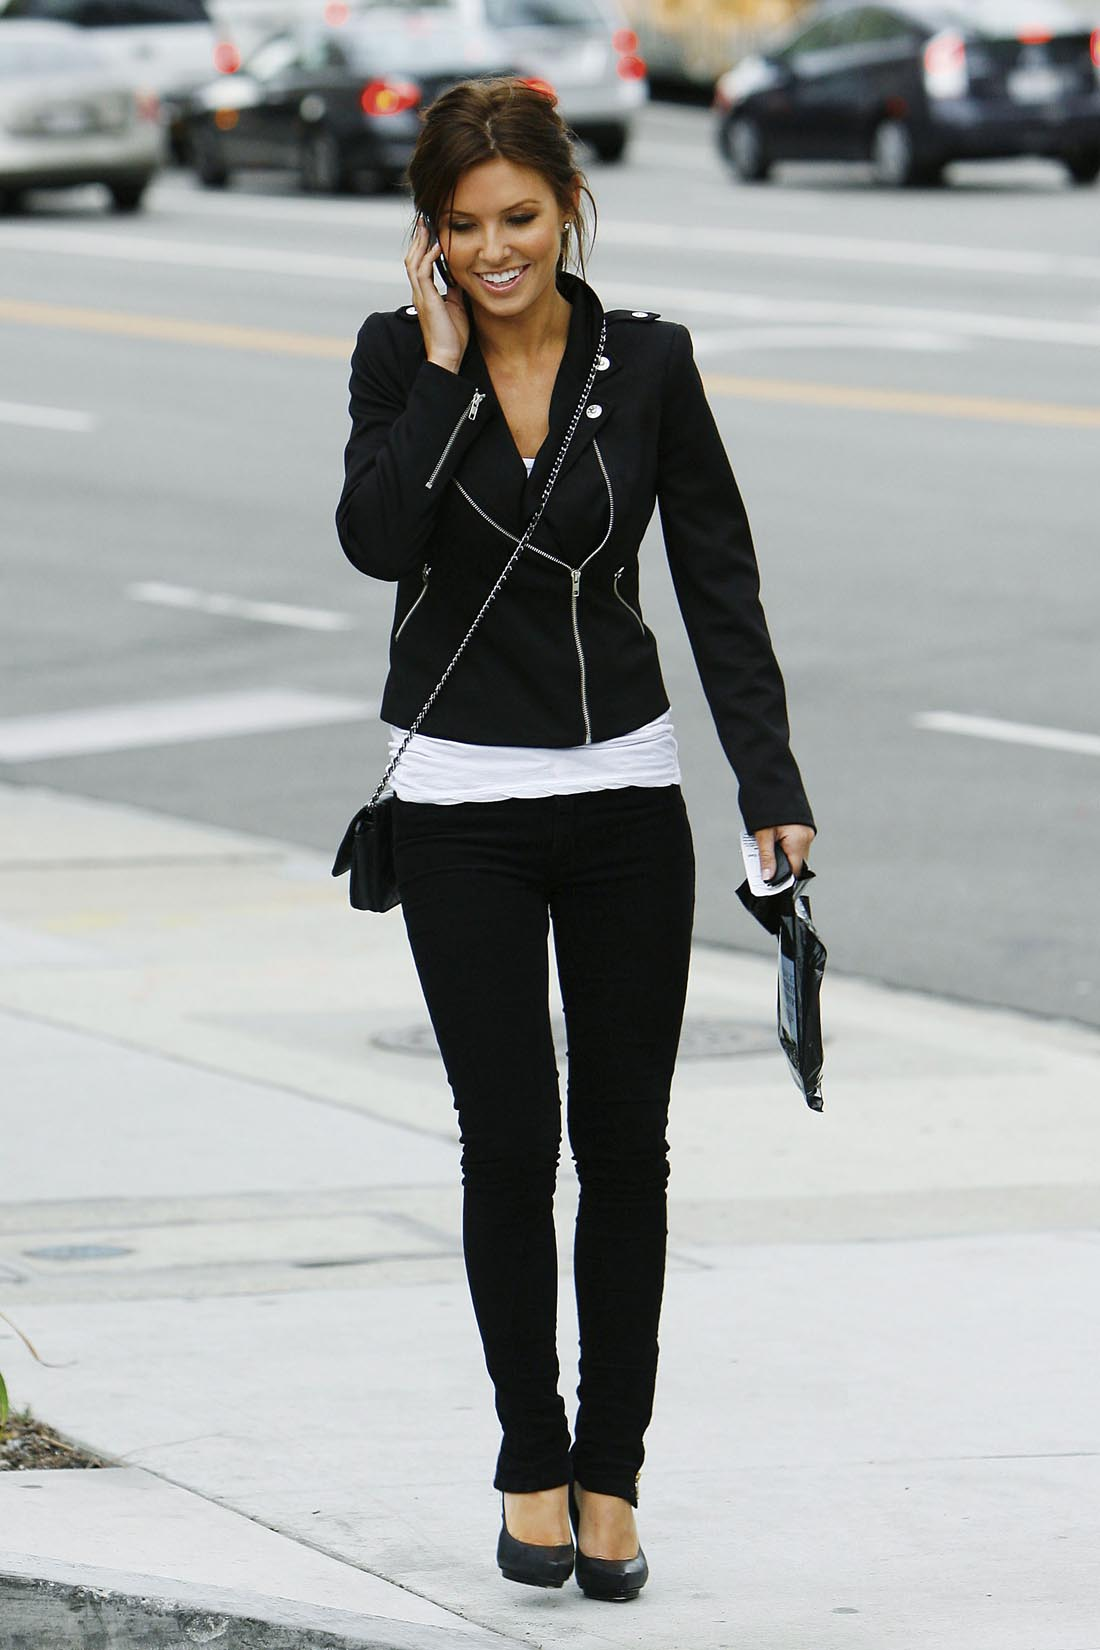 Recommend you Audrina patridge skinny